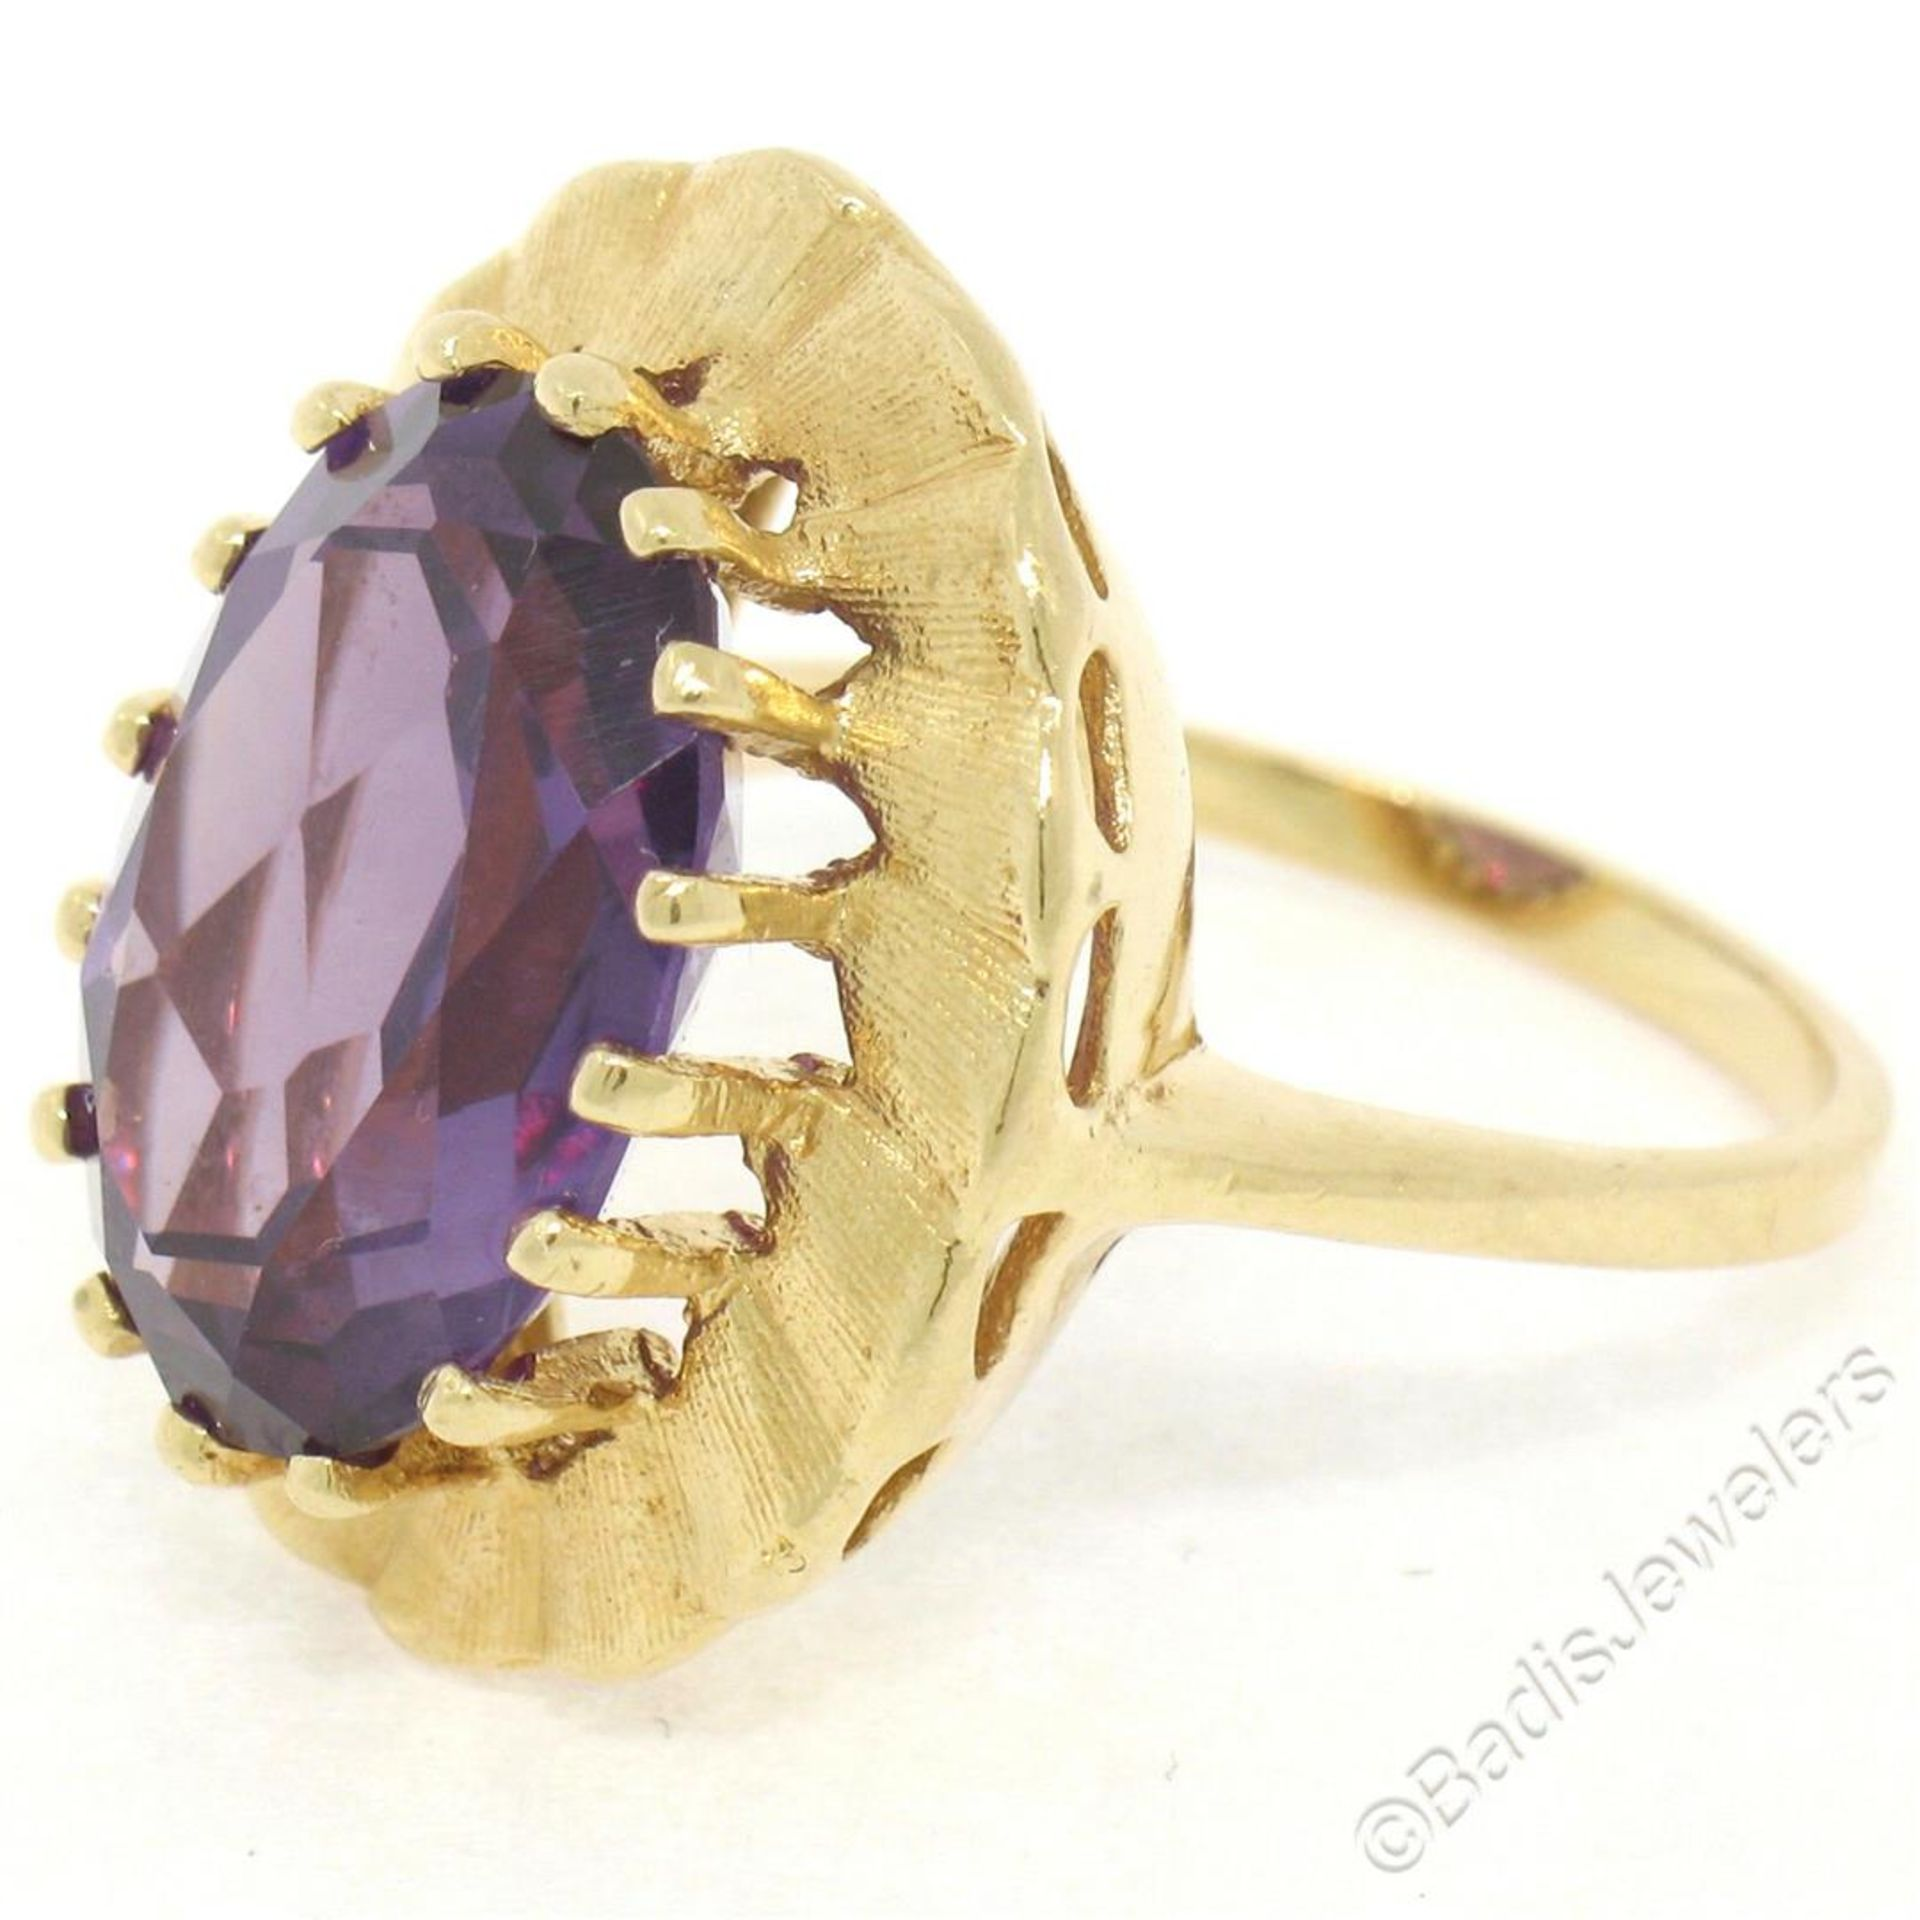 Vintage 14kt Yellow Gold Oval Synthetic Alexandrite Ring w/ Textured Halo - Image 6 of 9